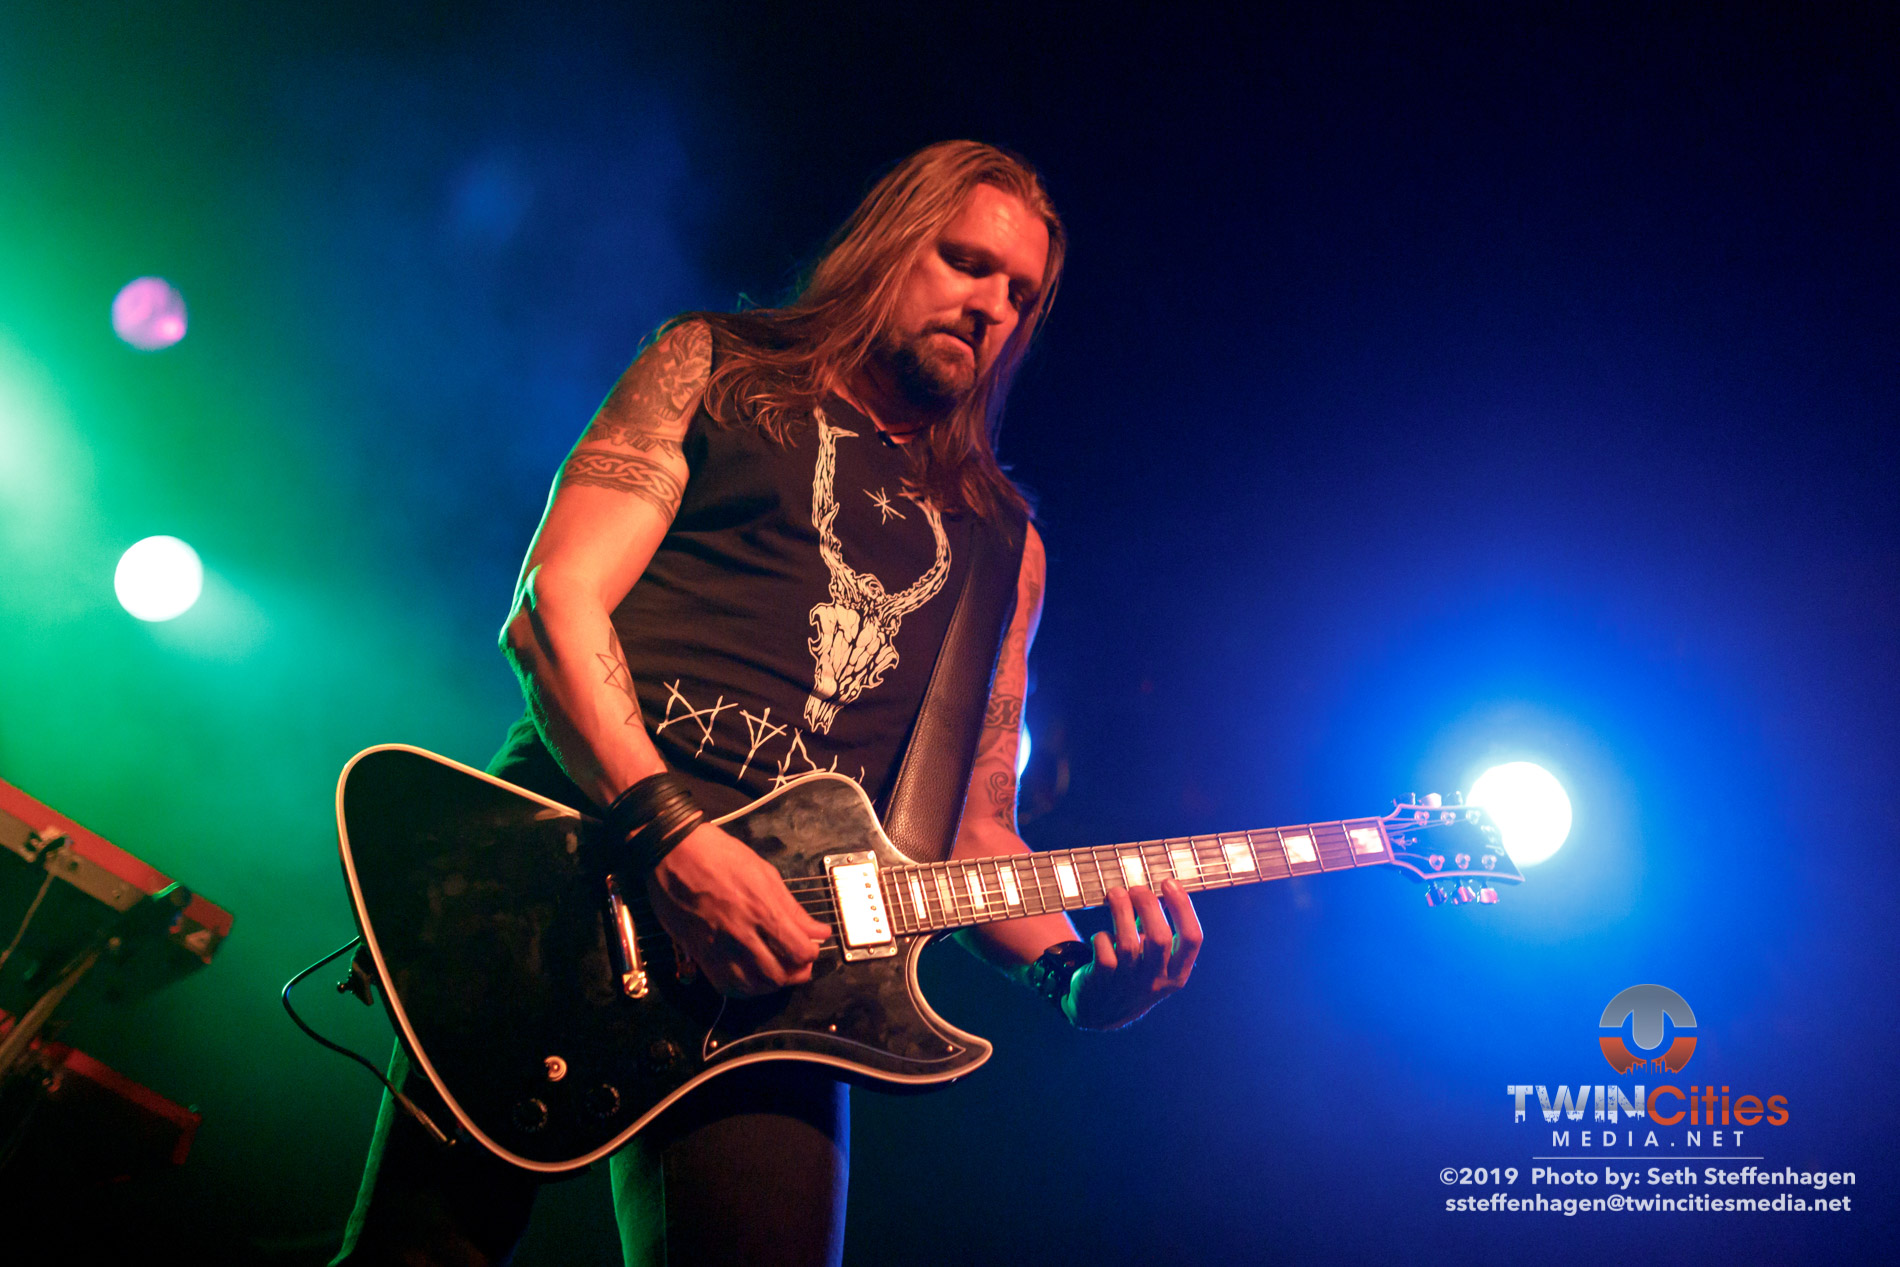 September 30, 2019 - Minneapolis, Minnesota, United States -  Amorphis live in concert at The Cabooze opening for Delain along with Anneke Van Giersbergen.  (Photo by Seth Steffenhagen/Steffenhagen Photography)